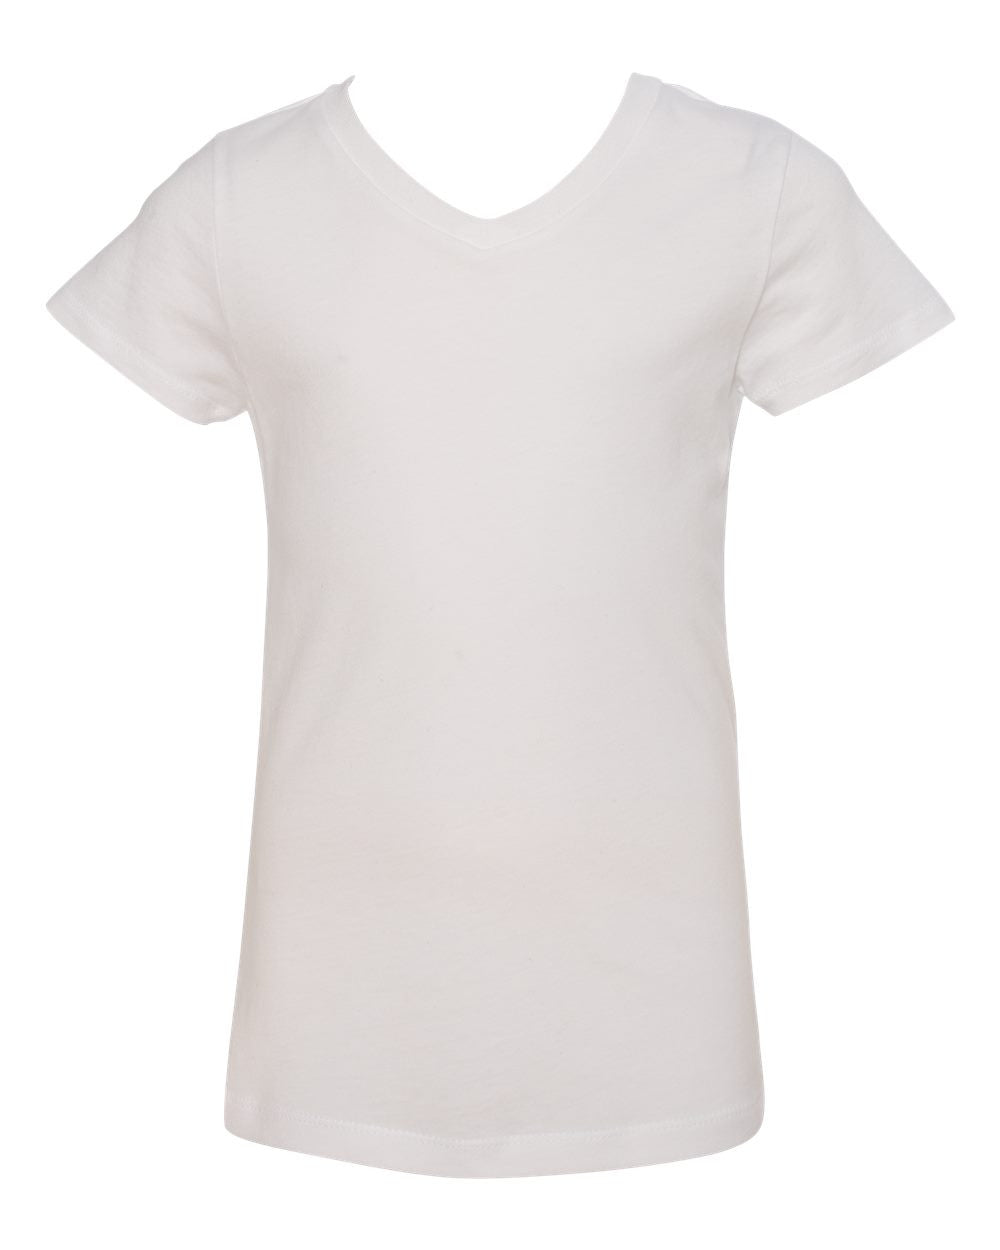 3740 - Girls' Premium Jersey The Adorable V